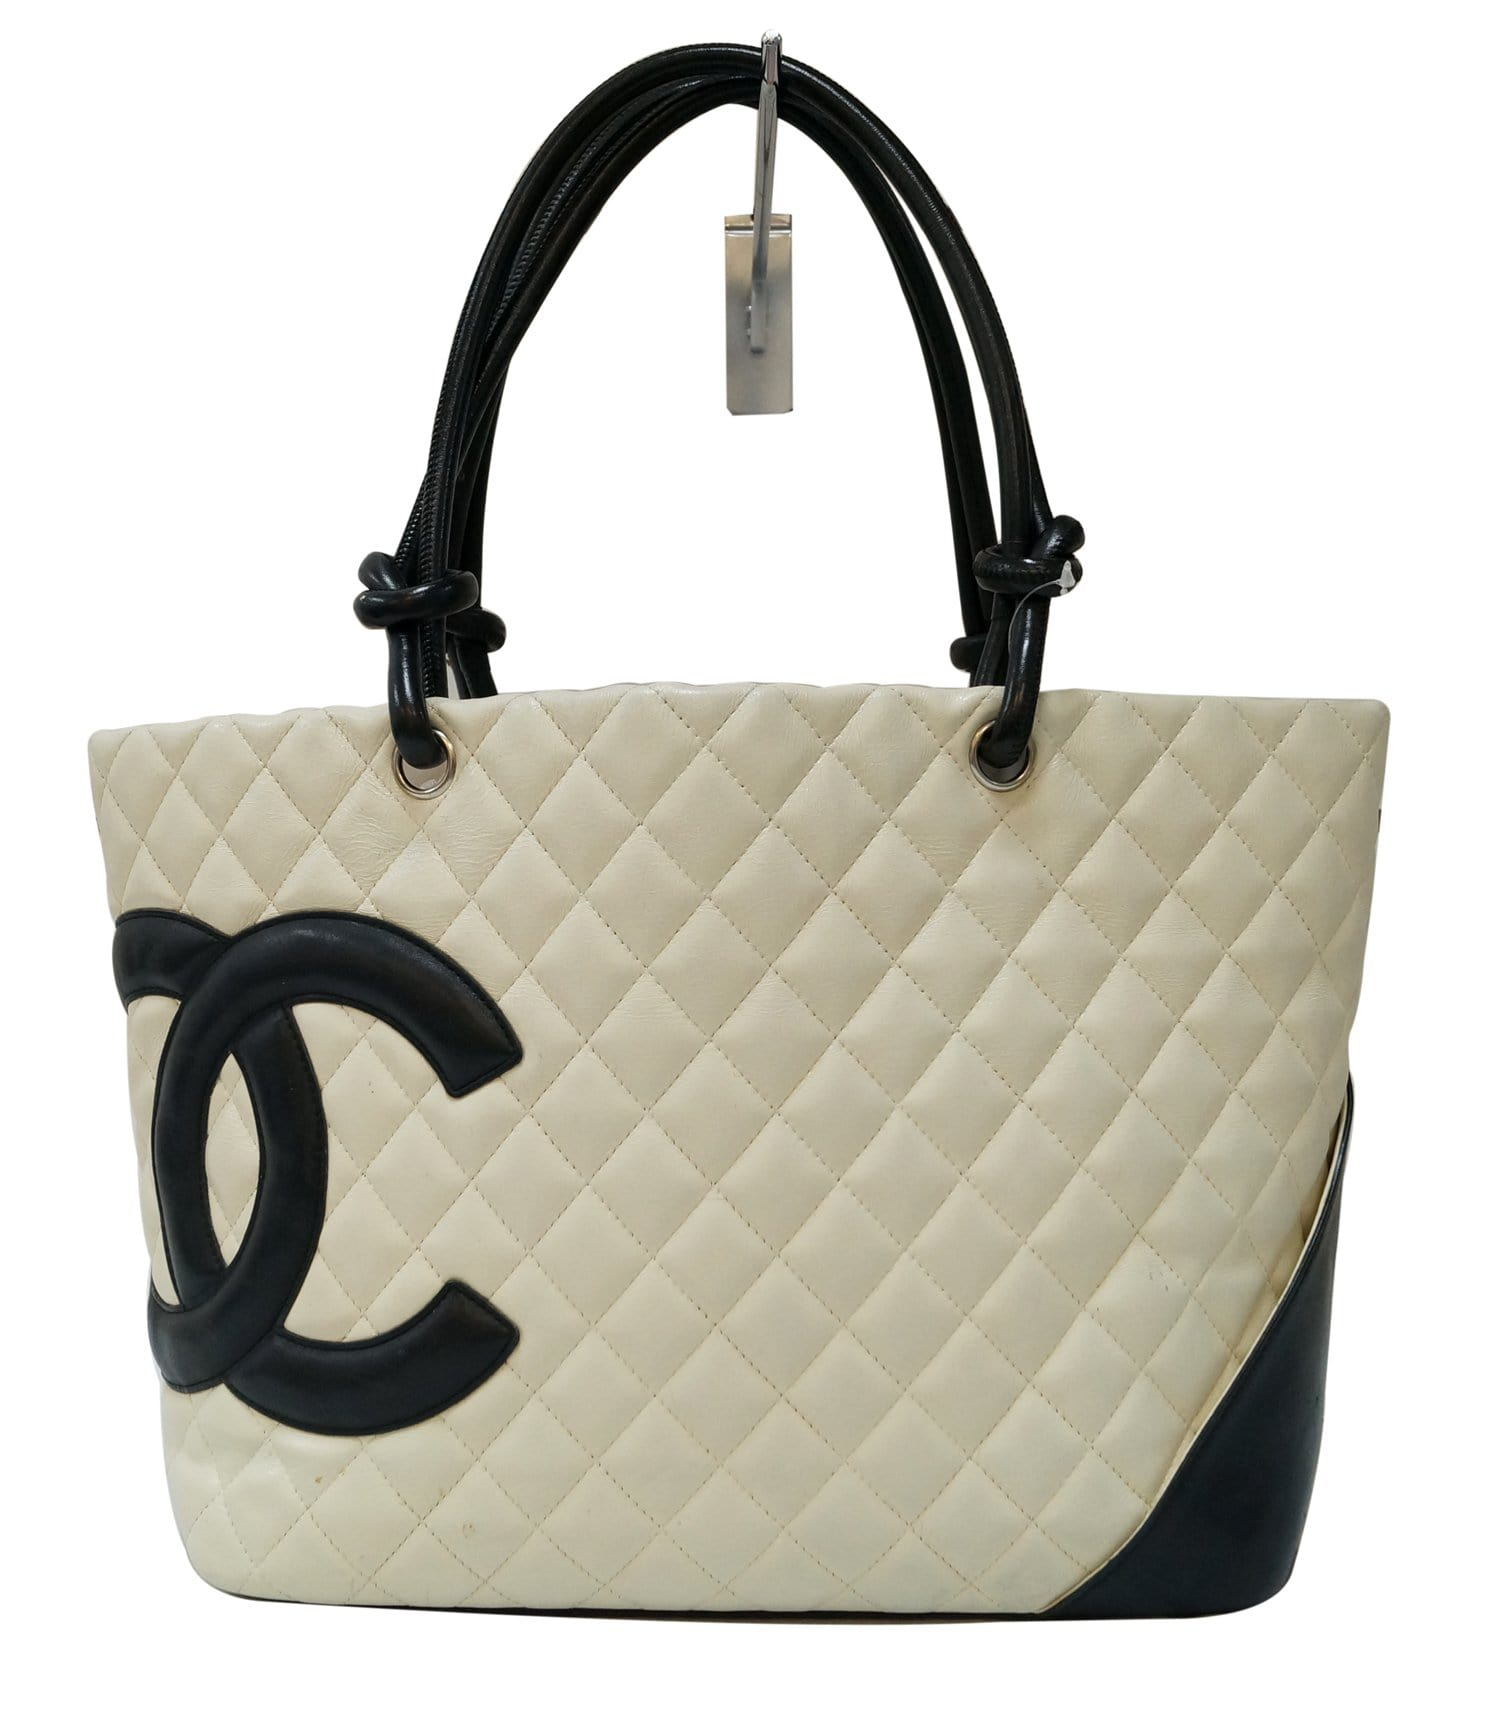 df602586cce7 CHANEL White Quilted Leather Ligne Cambon Tote Bag